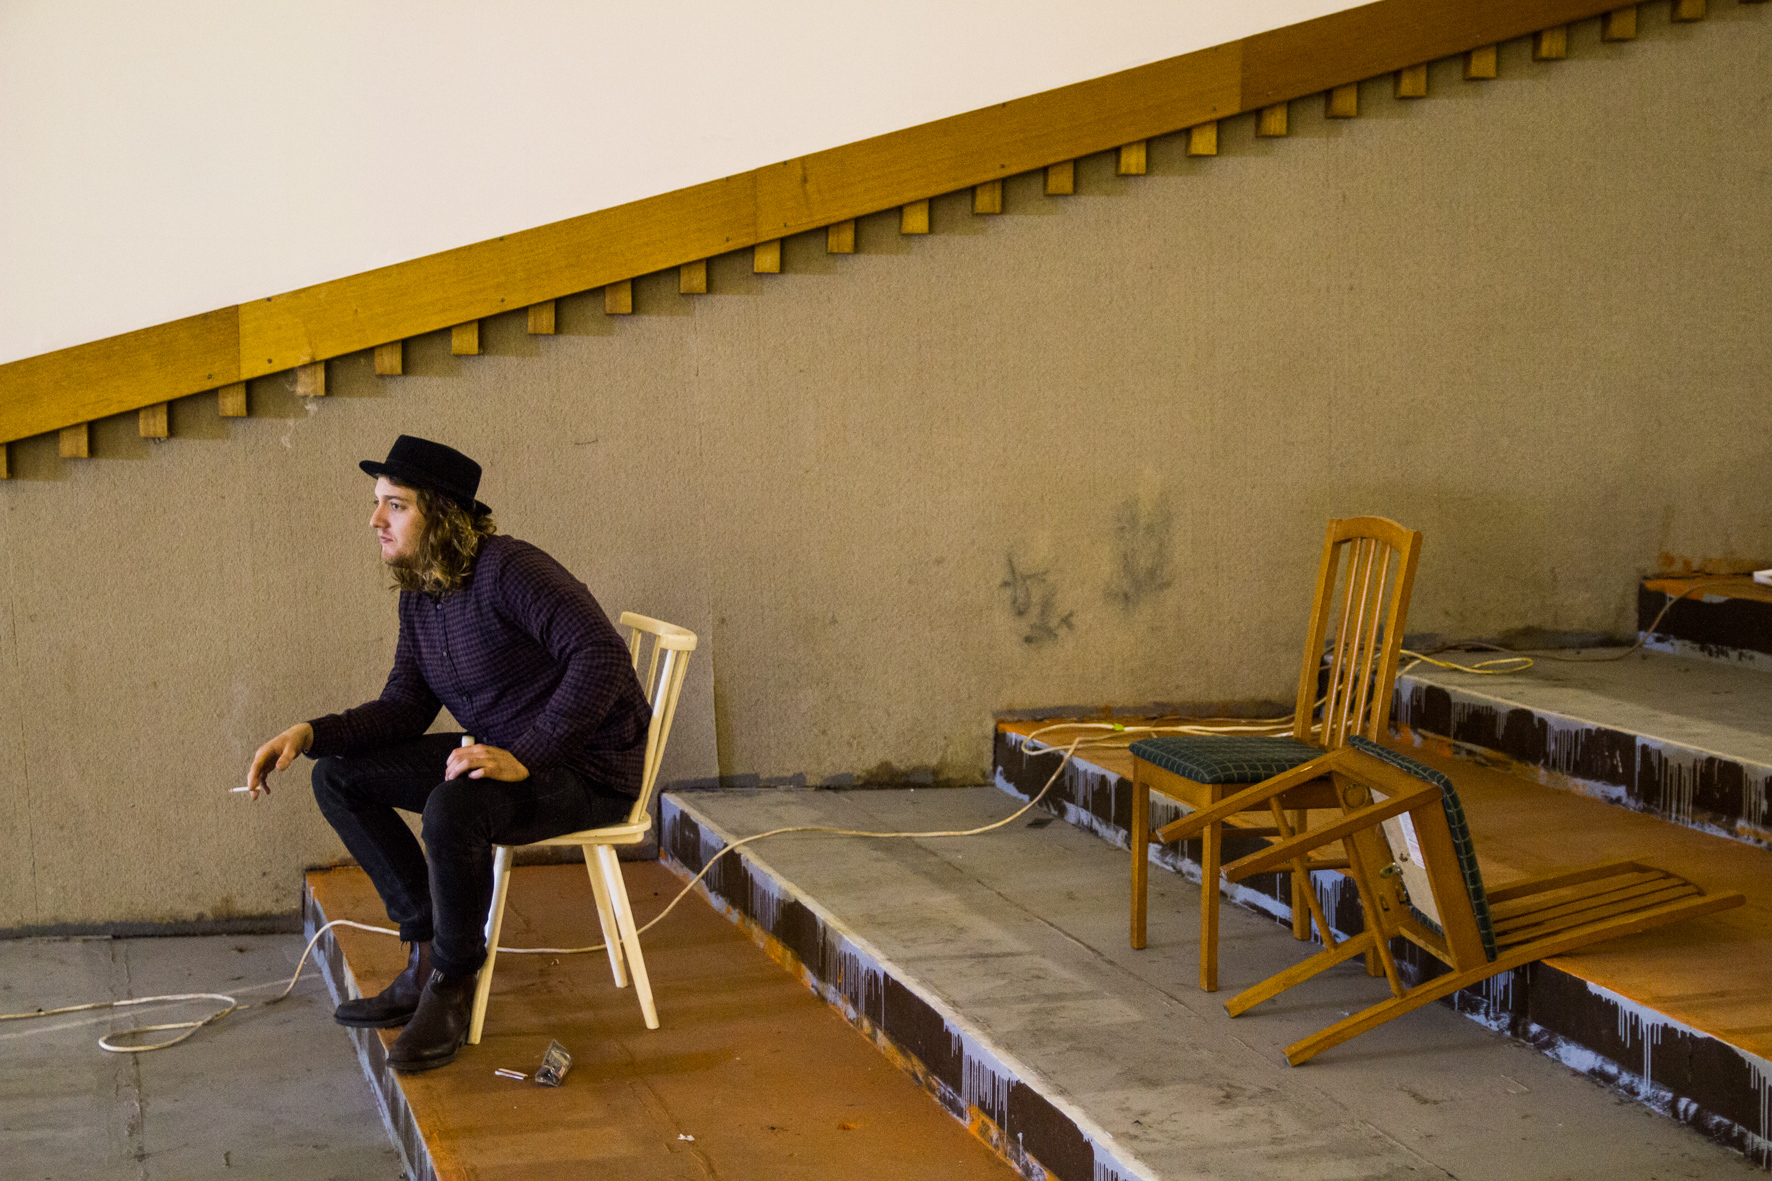 Kacee Heidt enjoys a quiet moment and cigarette between takes.